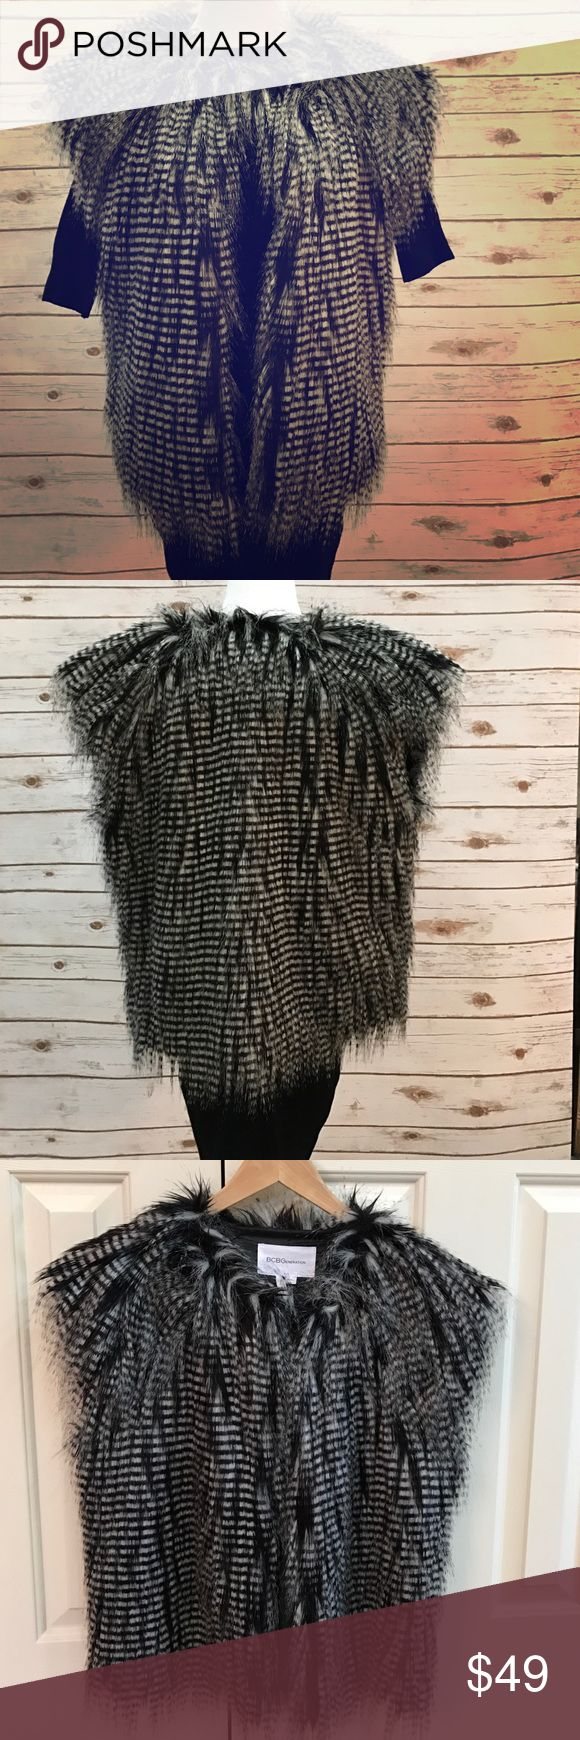 BCBG Fur Vest Beautiful faux fur vest that creates an exotic feather look. Looks hot with all black but versatile with all colors and looks. Never worn, no tags but brand new. BCBGeneration Jackets & Coats Vests